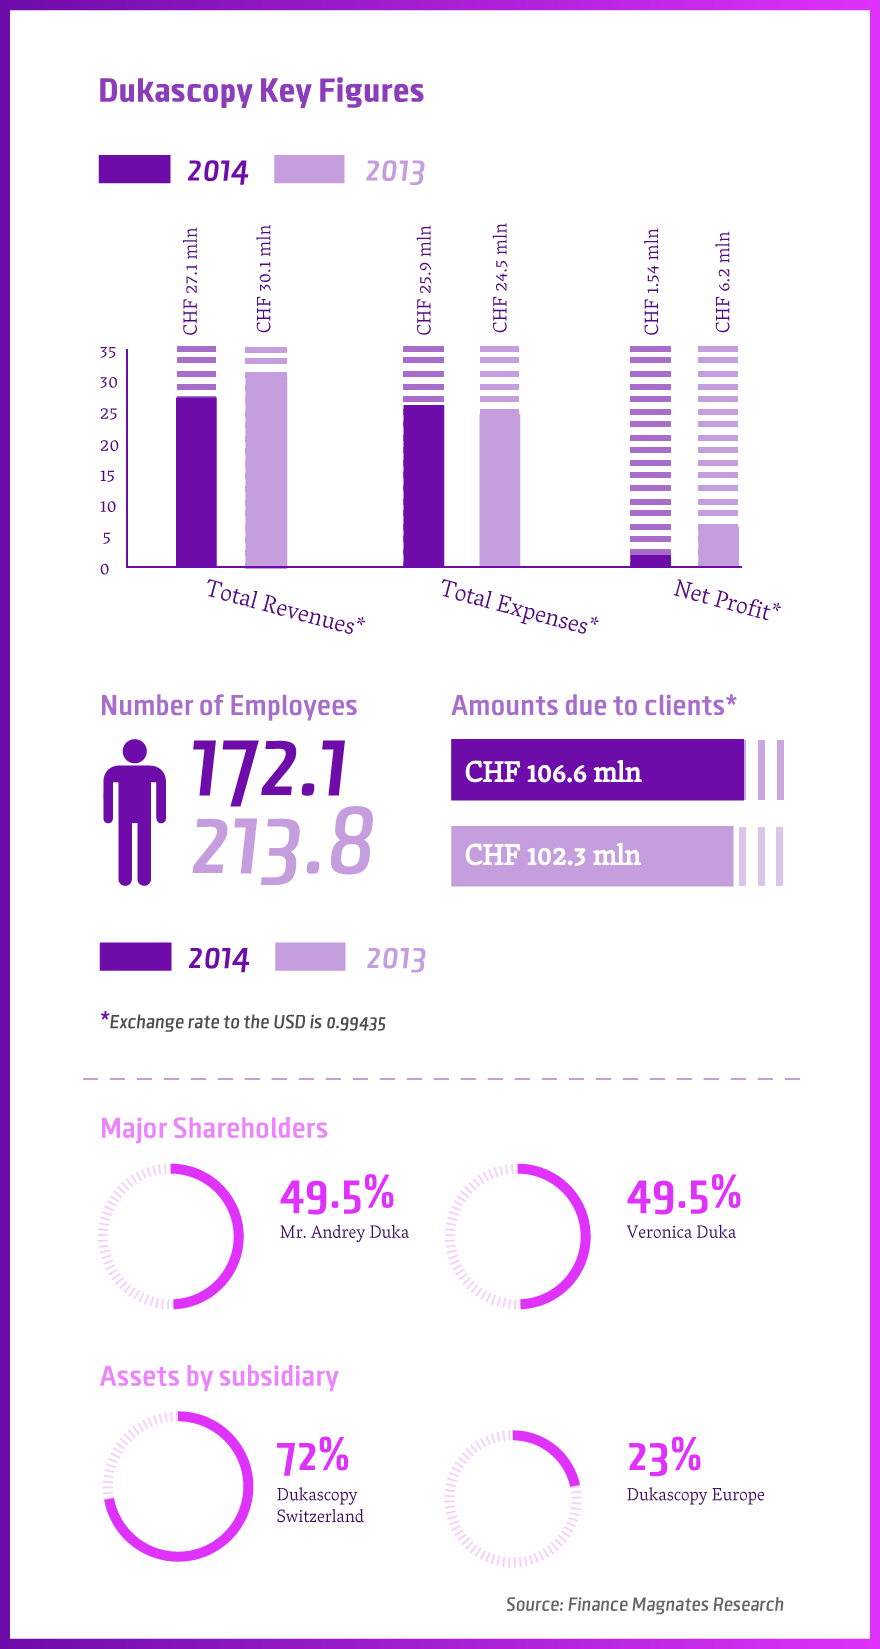 Dukascopy Annual Figures 2014